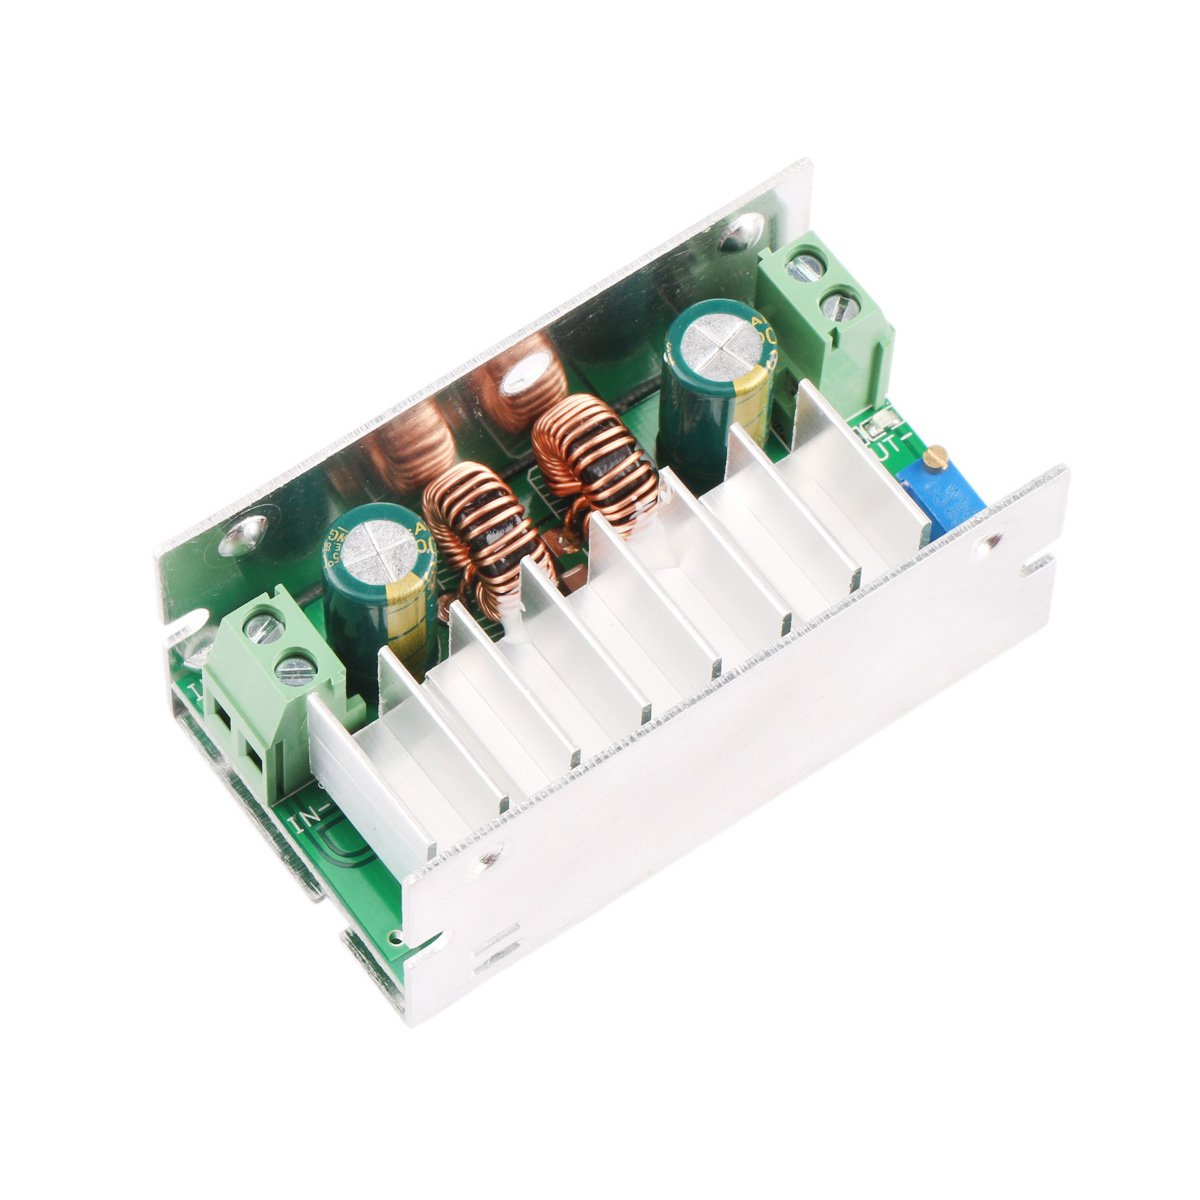 Drok Dc Automatic Buck Boost Converter 6v 35v 1 5a Step Down 3a Adjustable Regulator Using Lm350 Electronic Circuits And Up Output Volt 5v 12v Power Supply For Car Auto Vehicle Motor Regulated Sr Industrial Scientific